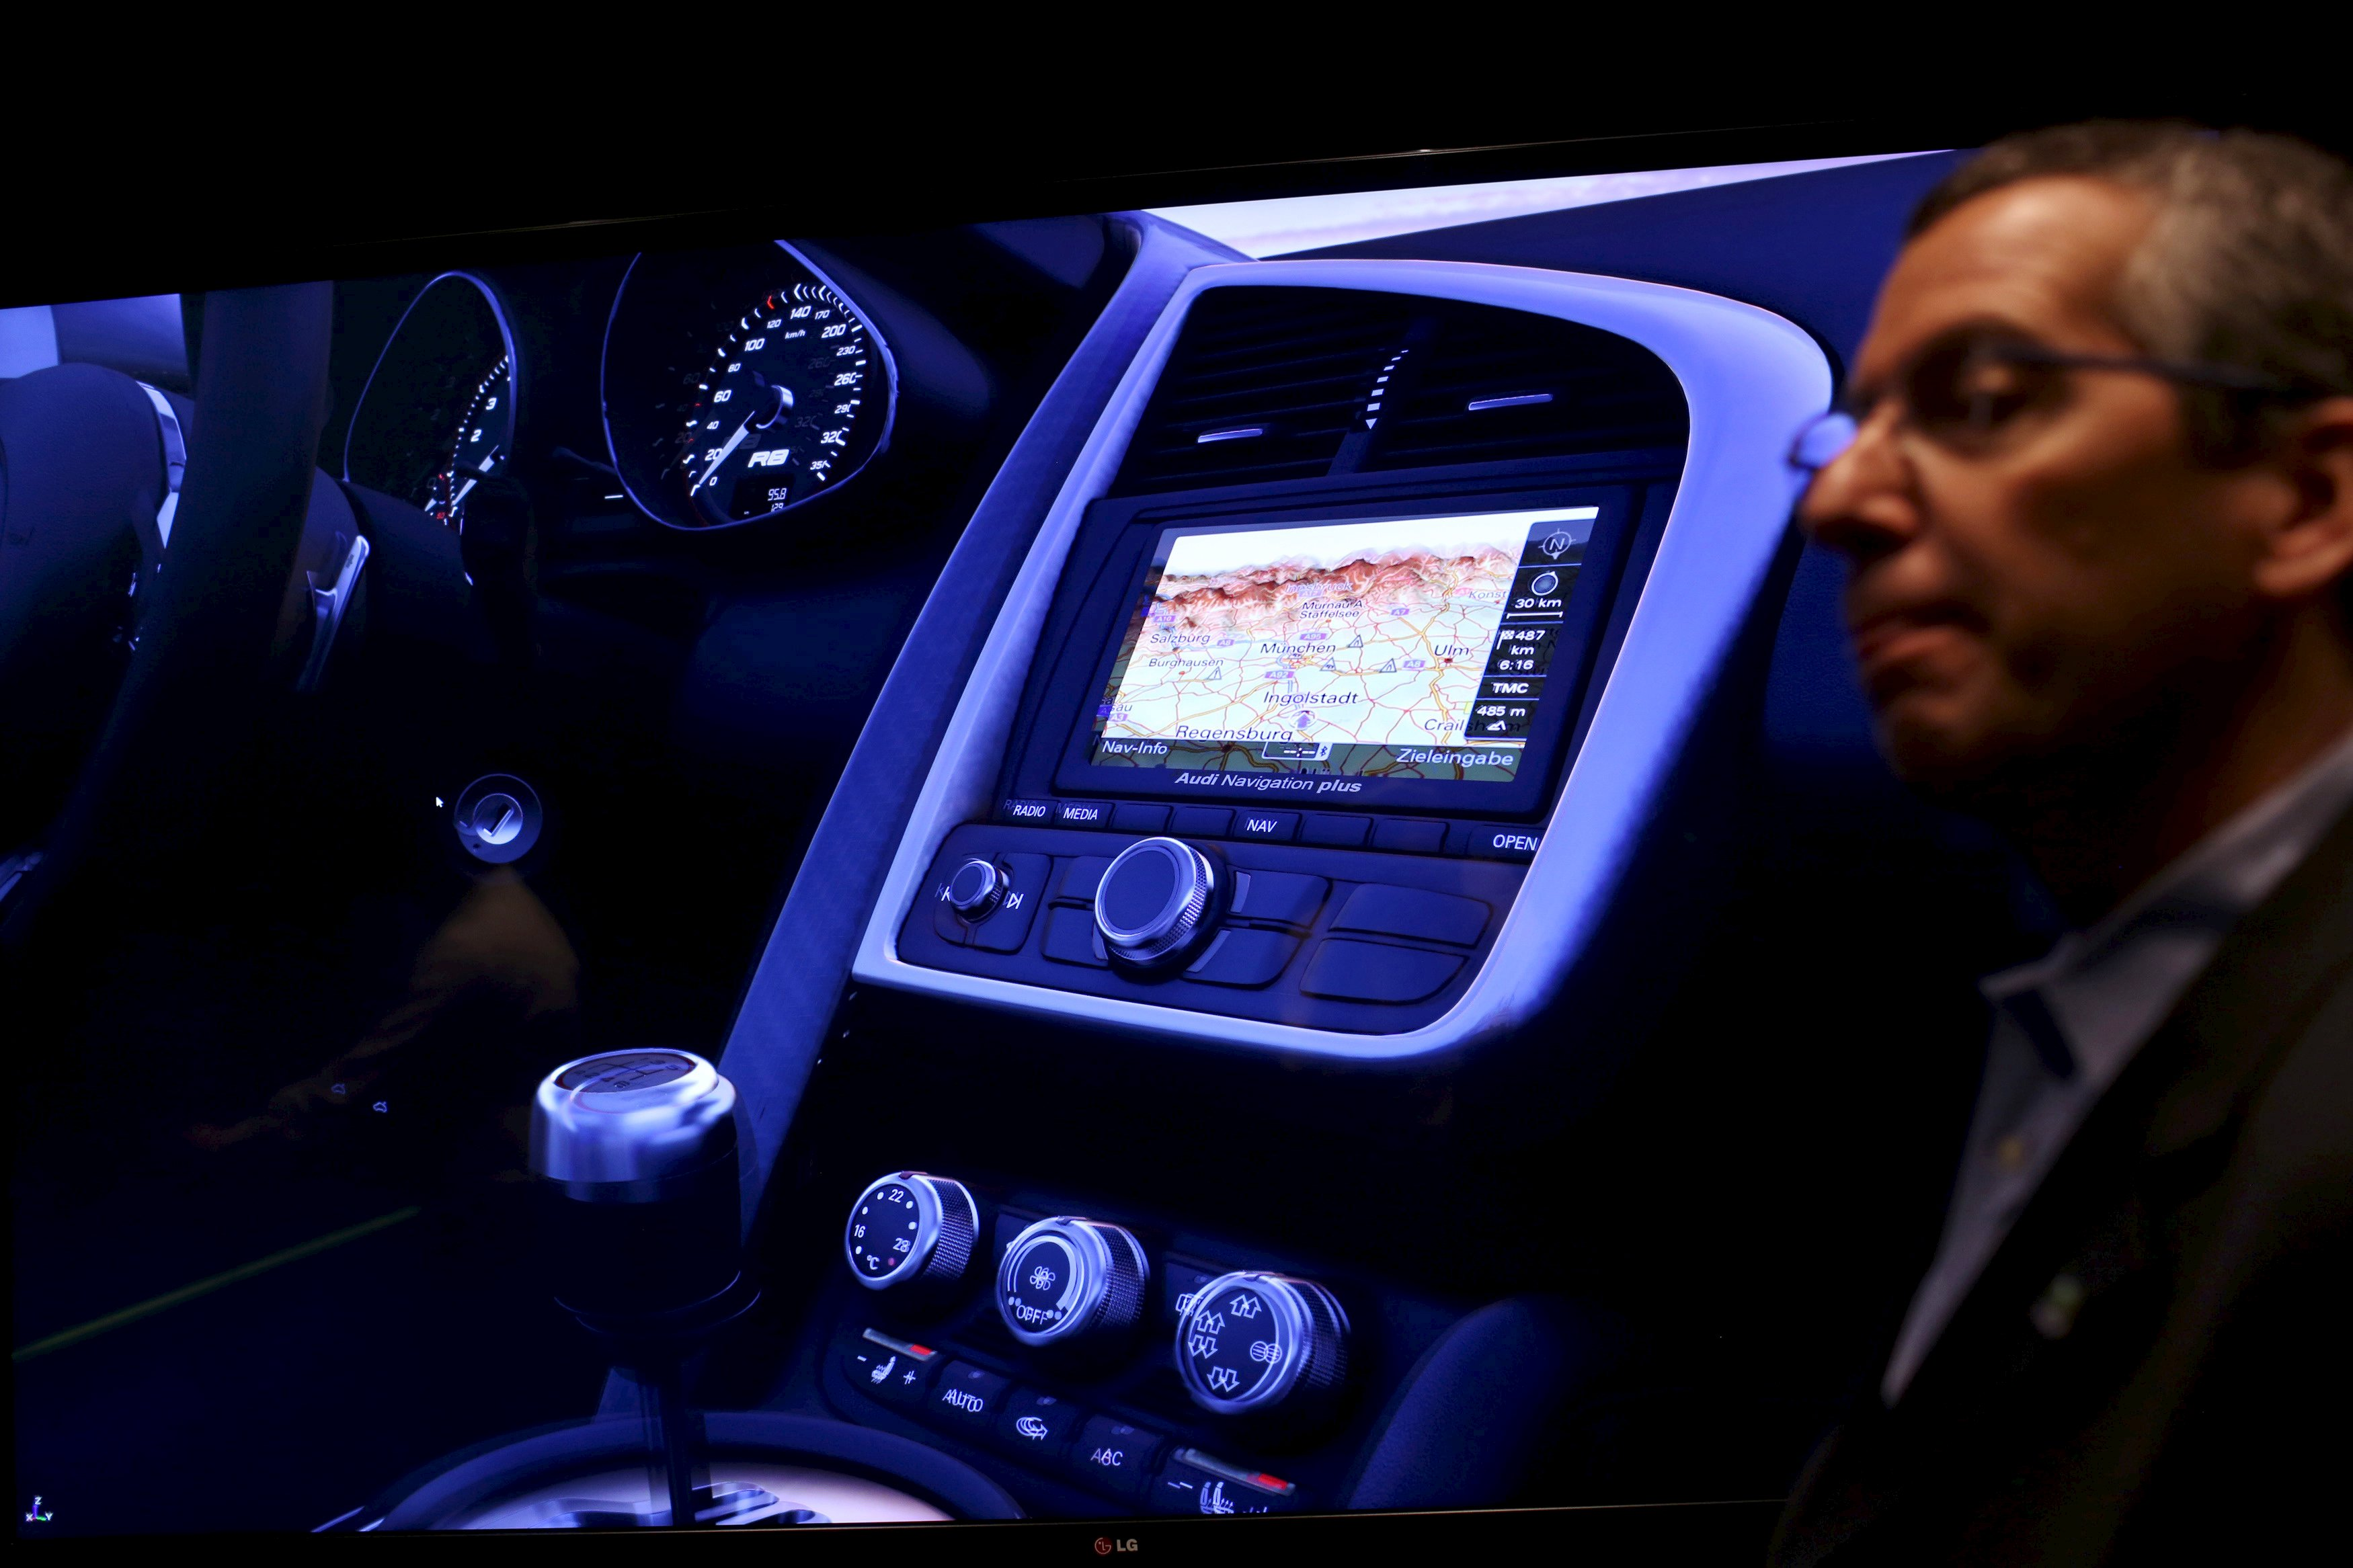 Nvidia's public relations officer Danny Shapiro speaks near an electronic dashboard on a graphic display of an Audi automobile in Santa Clara, California, in this February 11, 2015 file photo. While car companies insist new screens on dashboard displays will make driving less dangerous, increasingly elaborate screens have sparked a broad debate about how much technology is appropriate in a car. Making the in-dash displays as responsive as possible with minimal glances away from the road is a major goal, says Shapiro, senior director of automotive business for Nvidia, a company that makes hardware and software for displays featured in Audis and Teslas. Photo: Reuters/ File